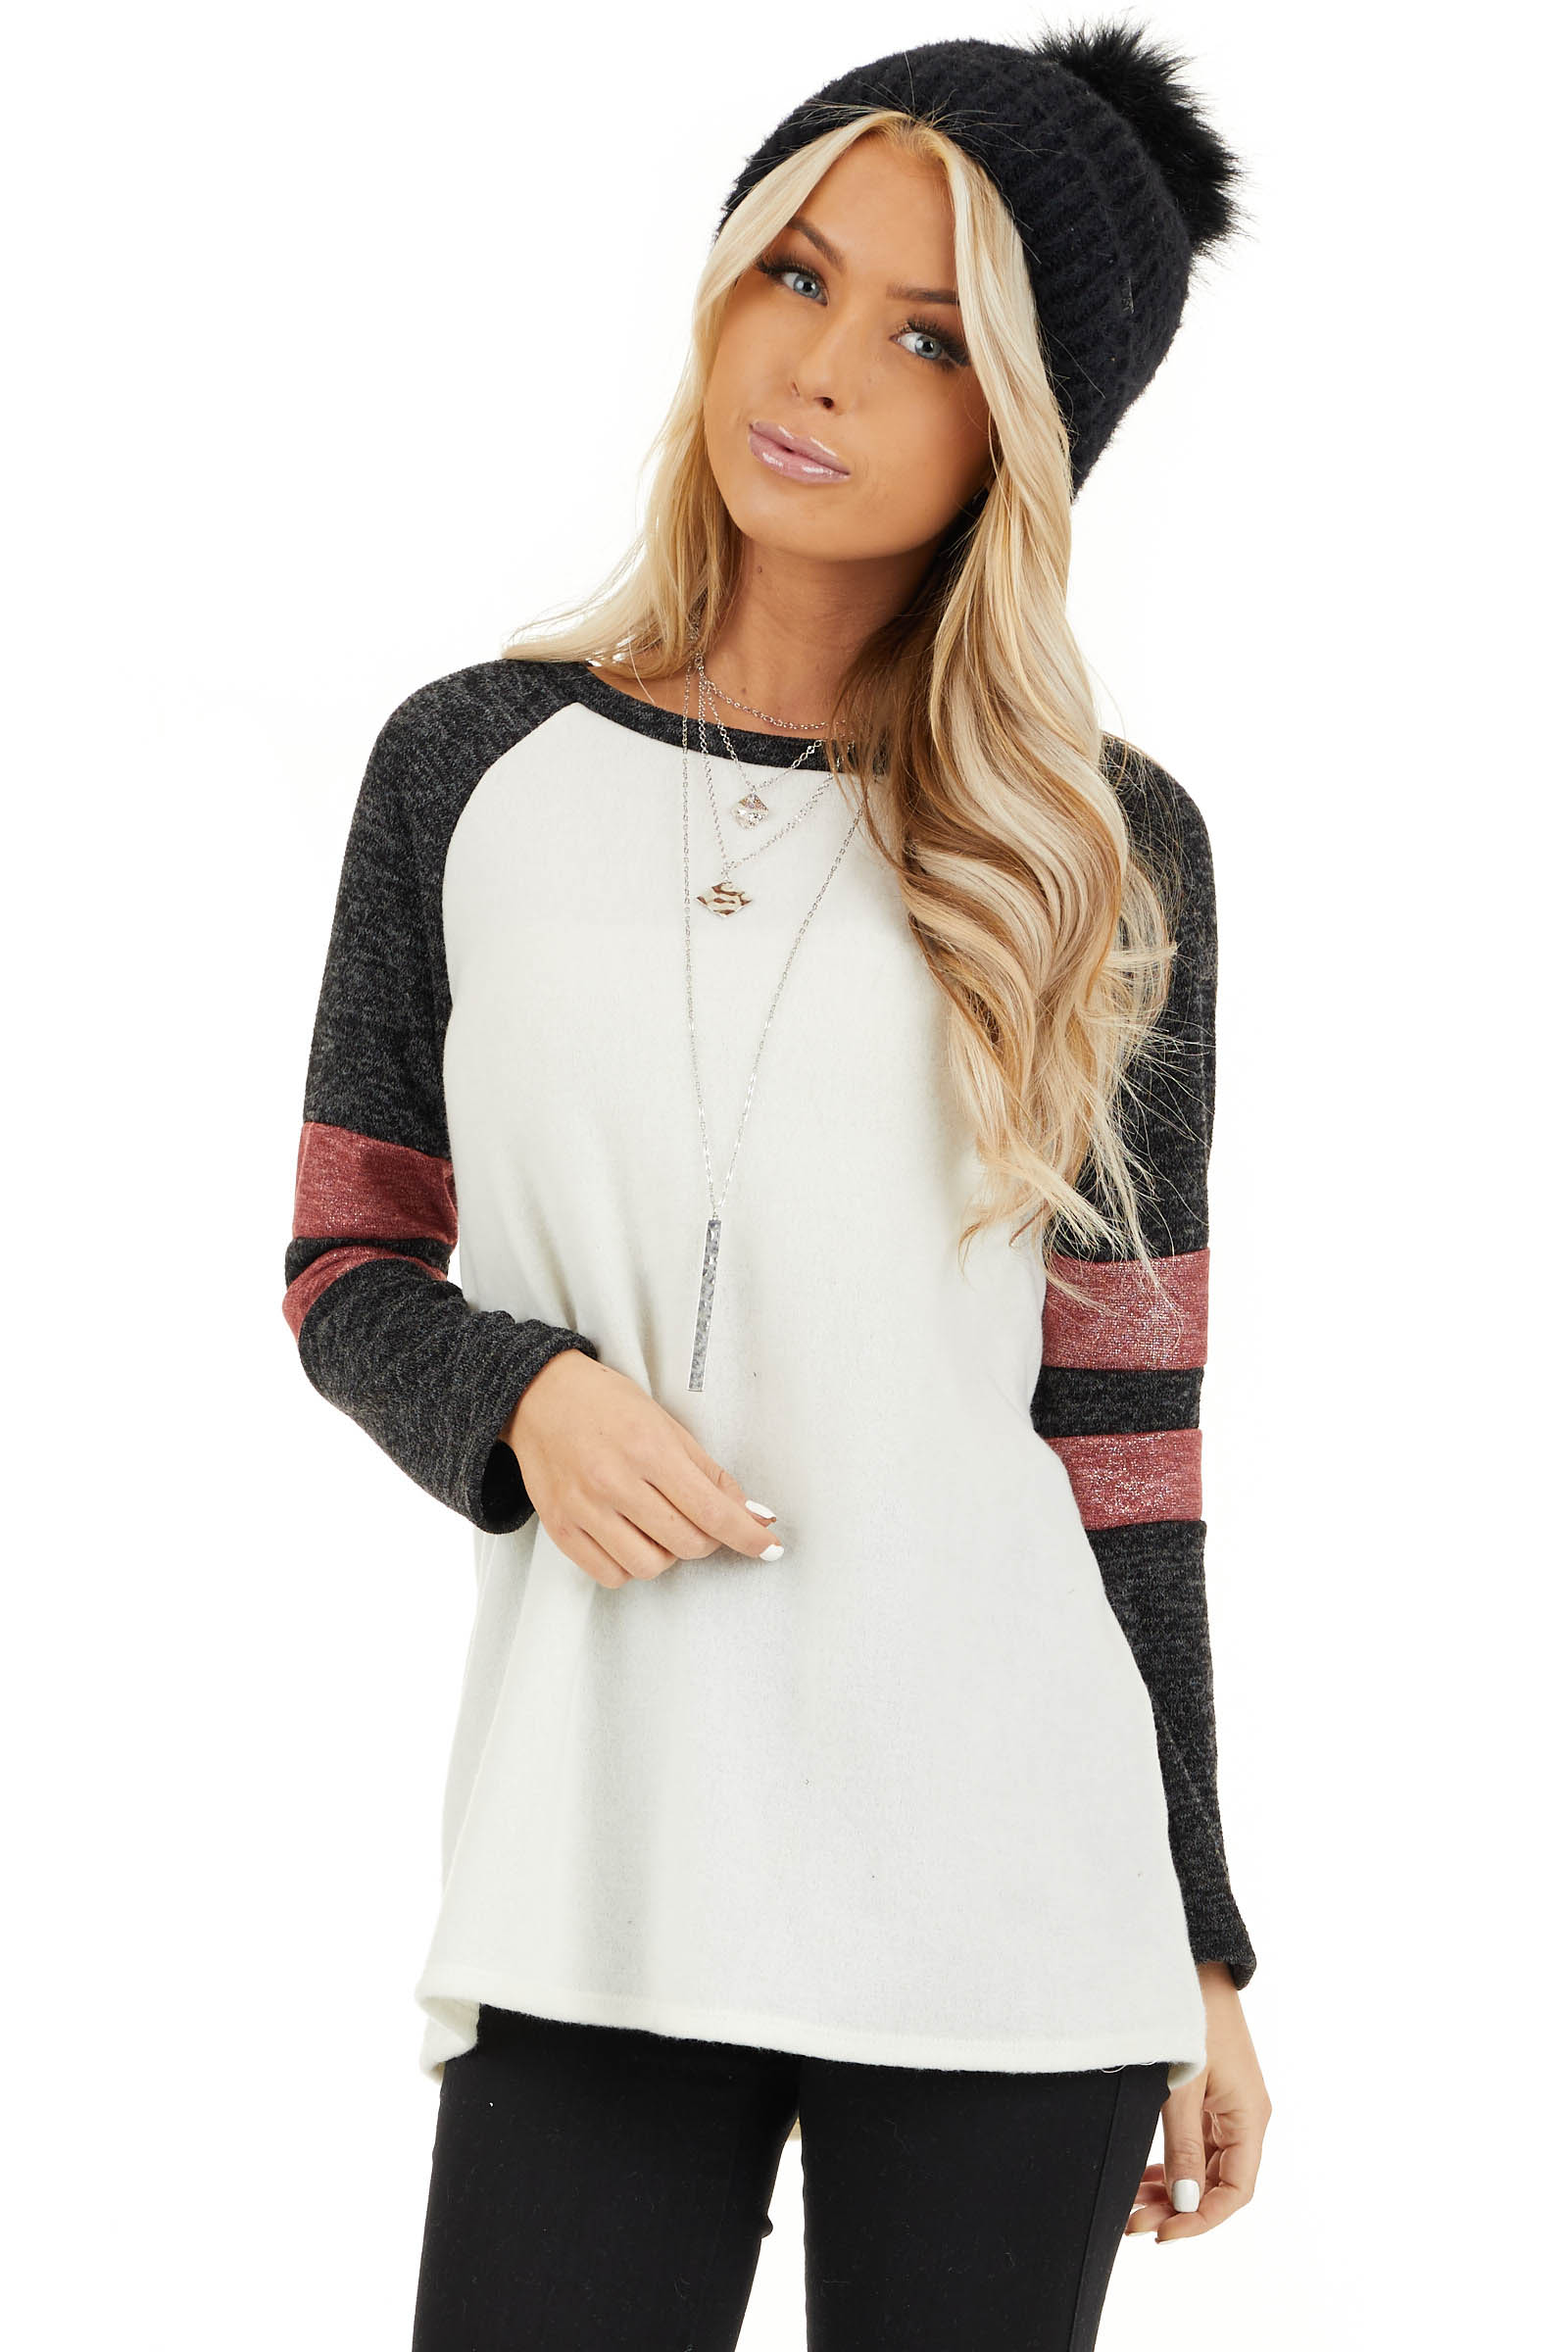 Ivory and Charcoal Long Sleeve Top with Sleeve Stripe Detail front close up